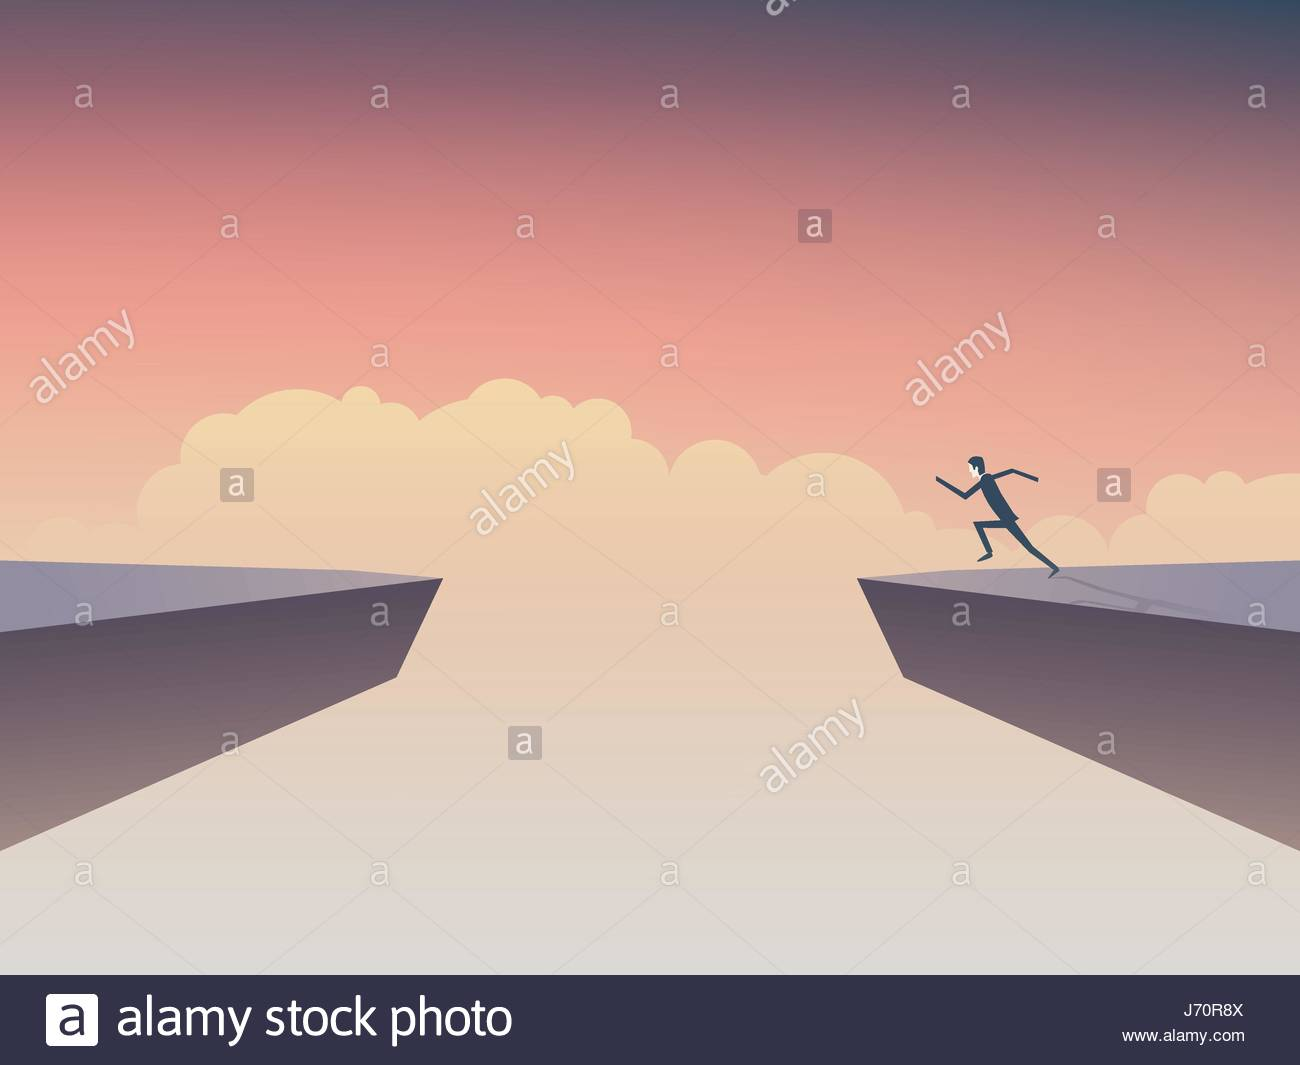 Businessman about to jump over gap between two cliffs. Symbol of business risk, courage, determination, motivation. - Stock Vector